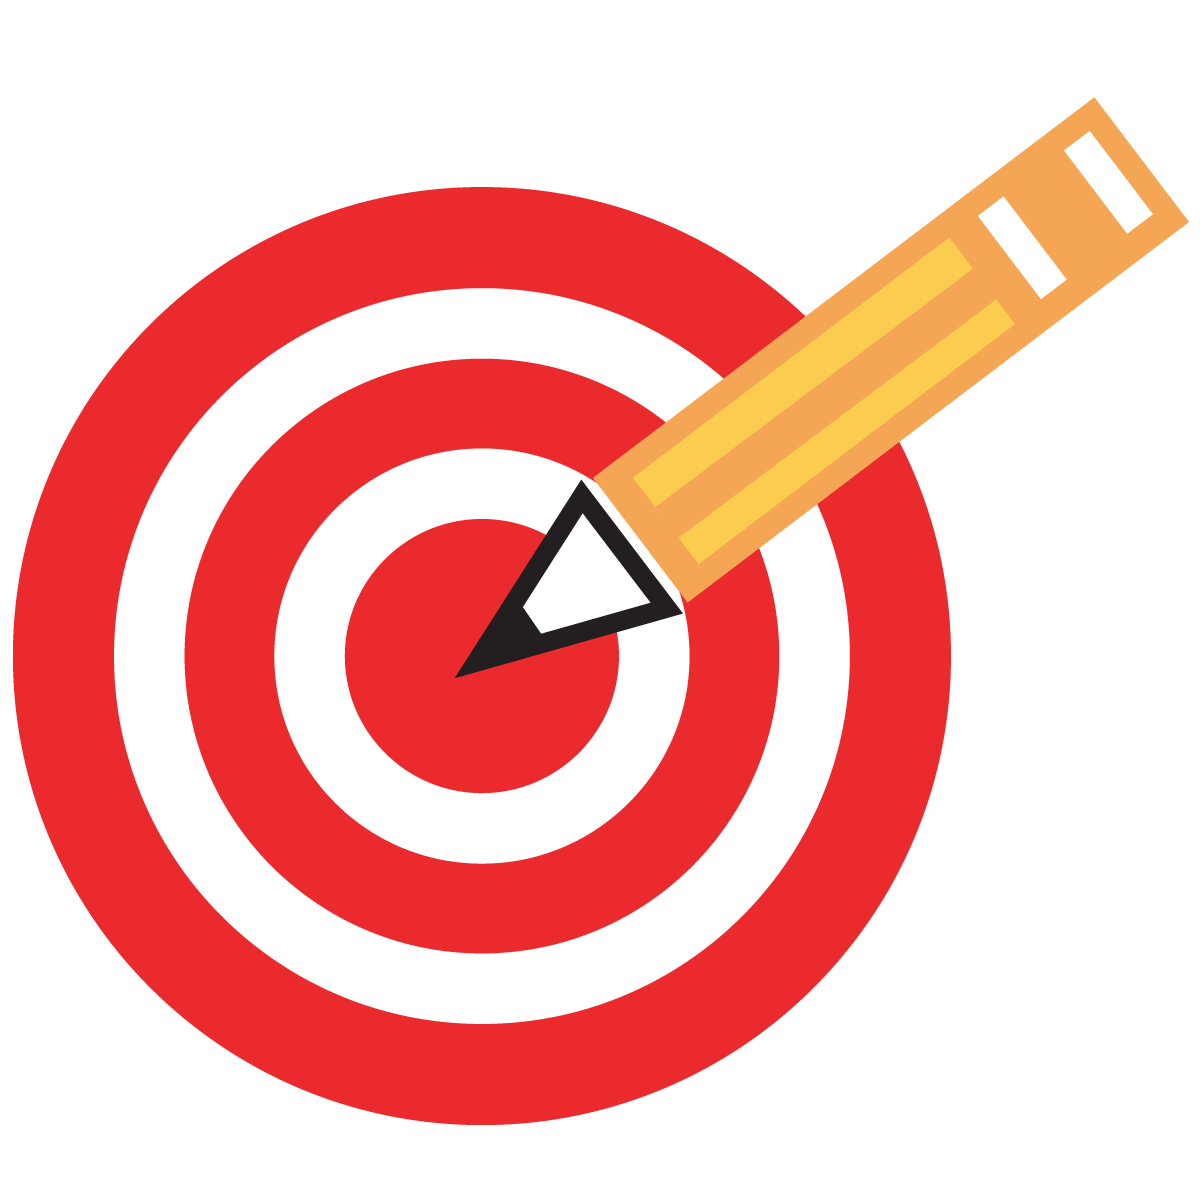 Goals clipart red. Goal group target student